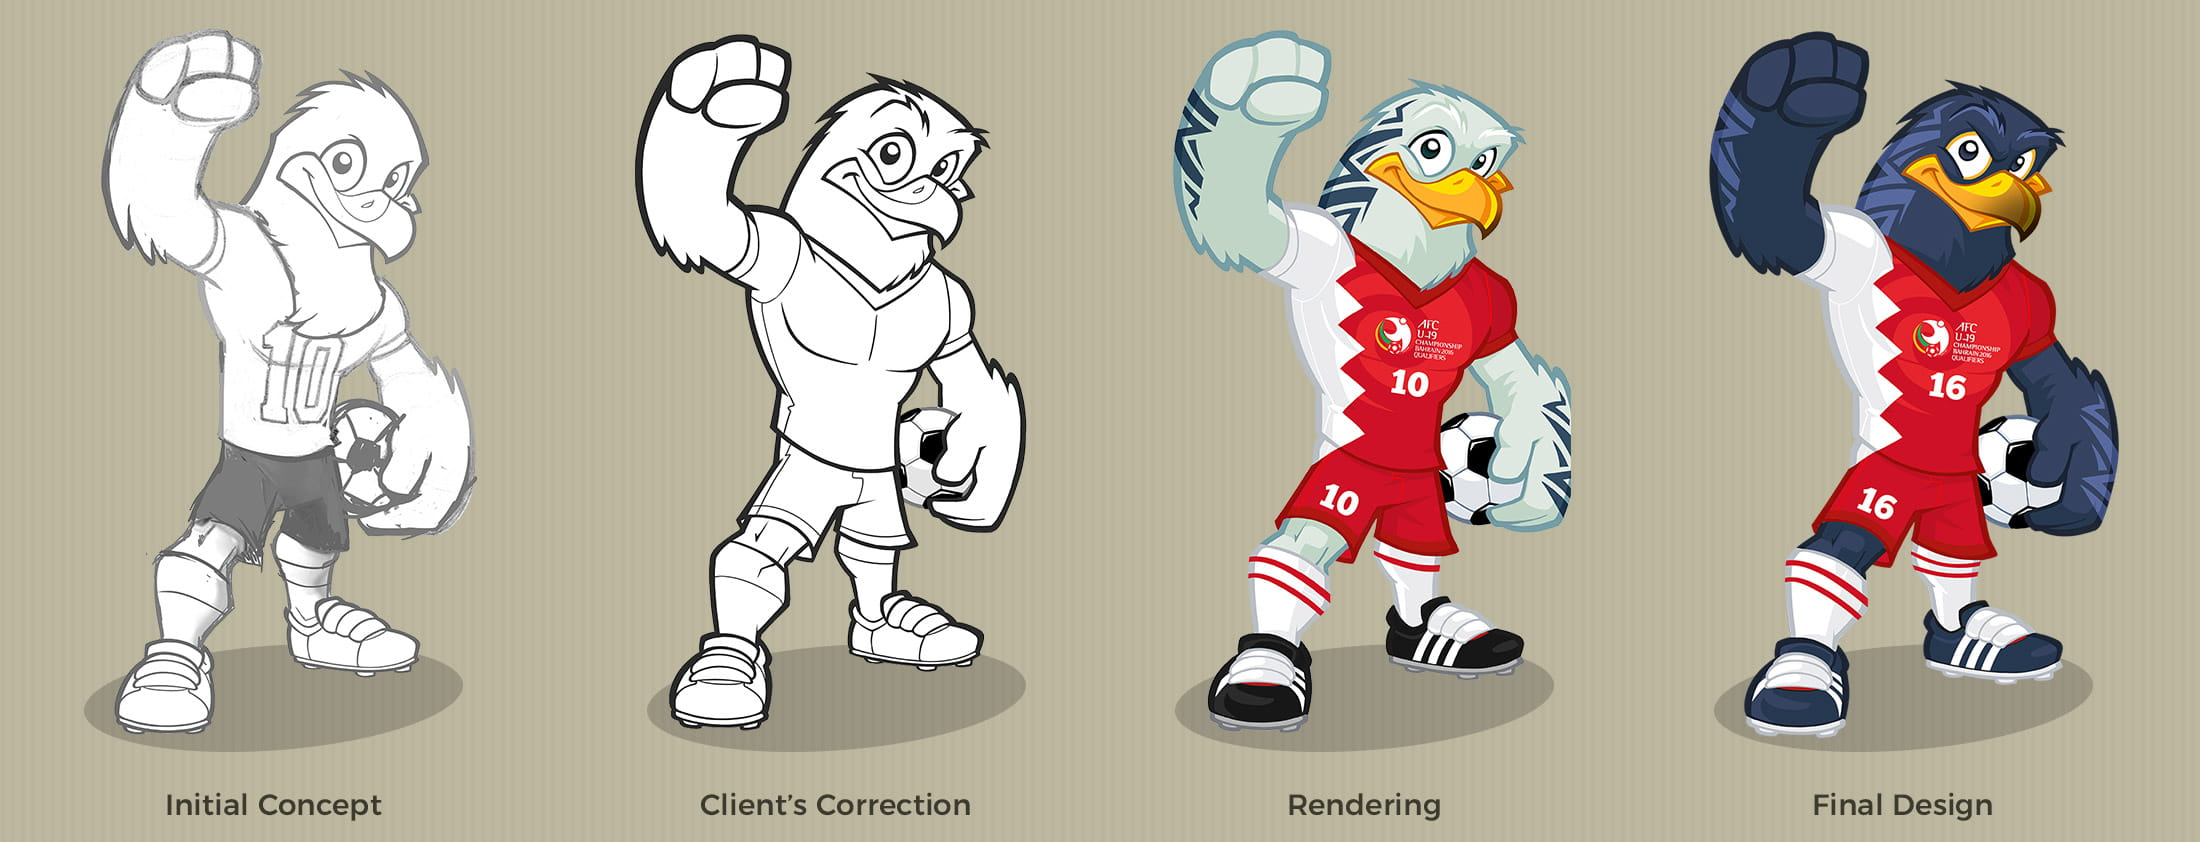 mascot design creation process